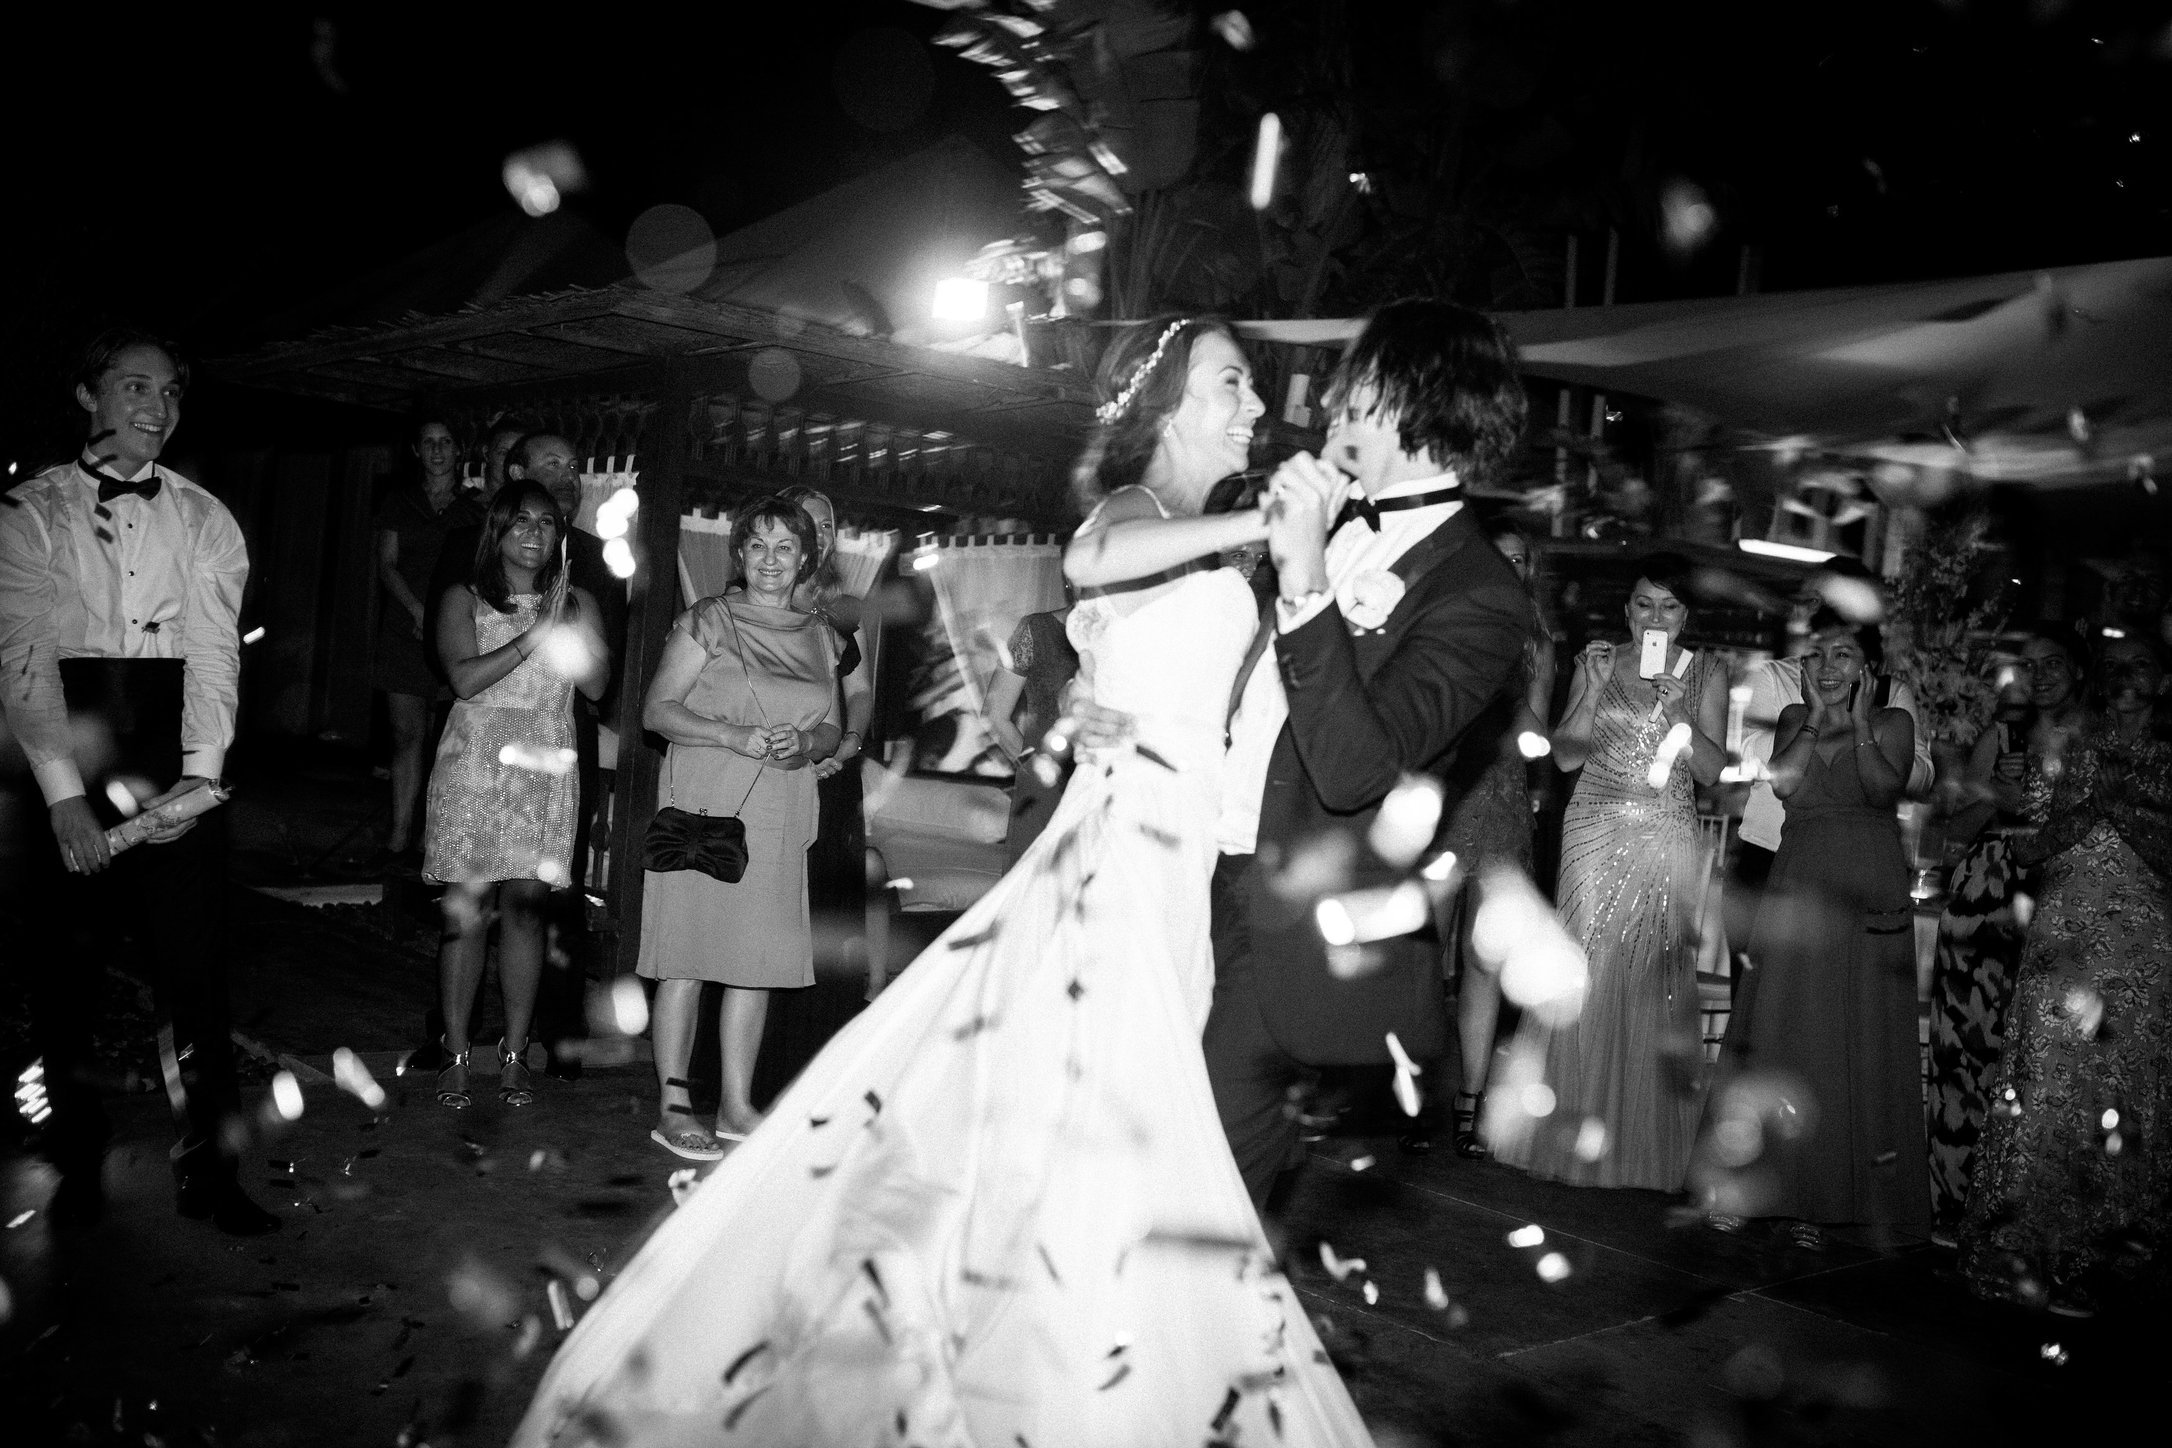 Atzaro_Ibiza_Wedding-552bw.jpg